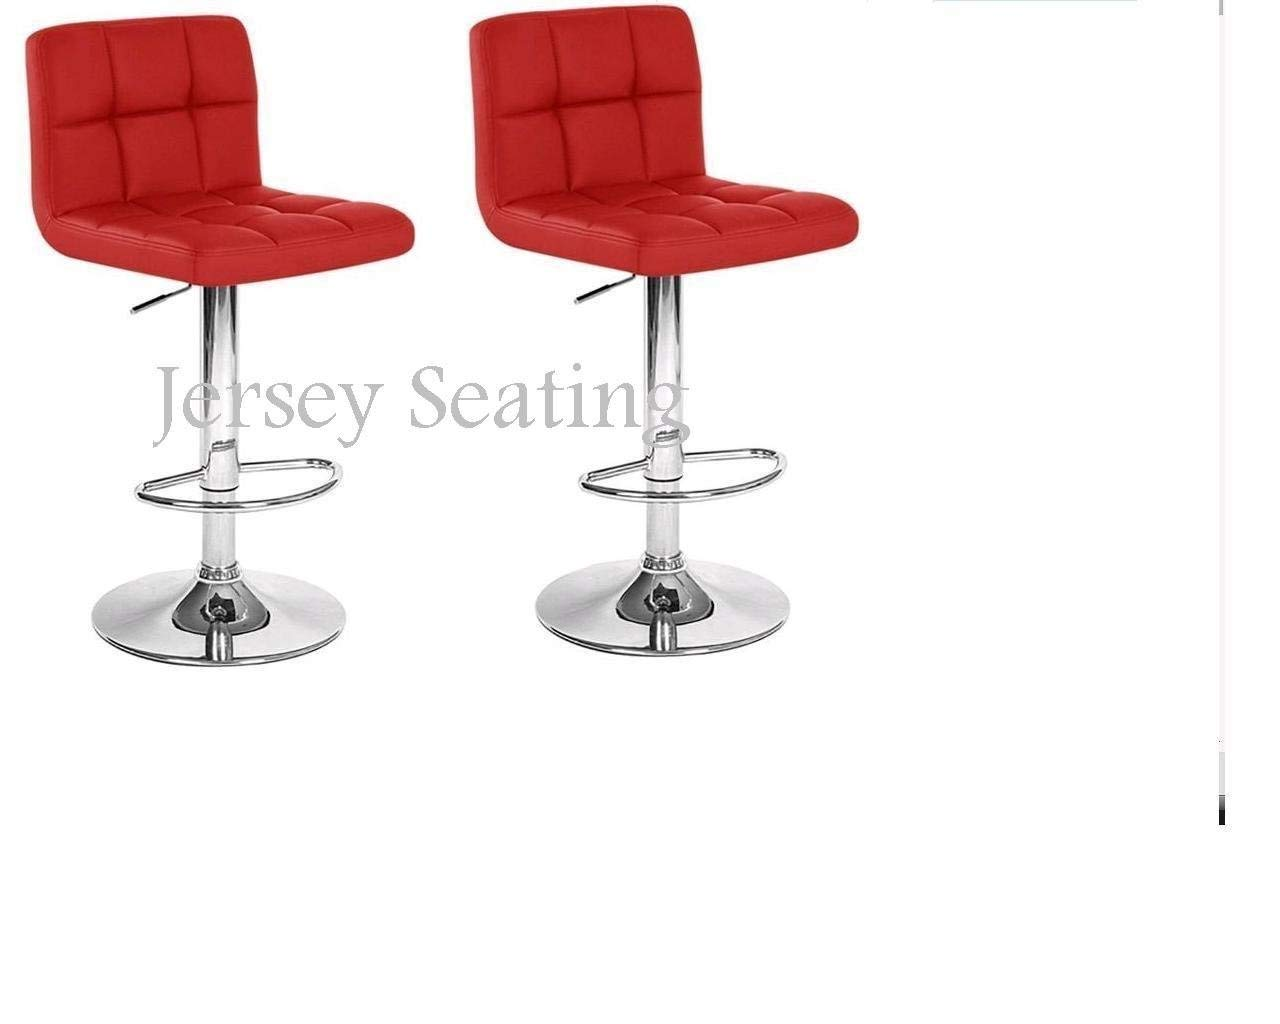 2 x PU Leather Hydraulic Lift Adjustable Counter Bar Stool Dining Chair Red -Pack of 2 150 Made By jersey seating